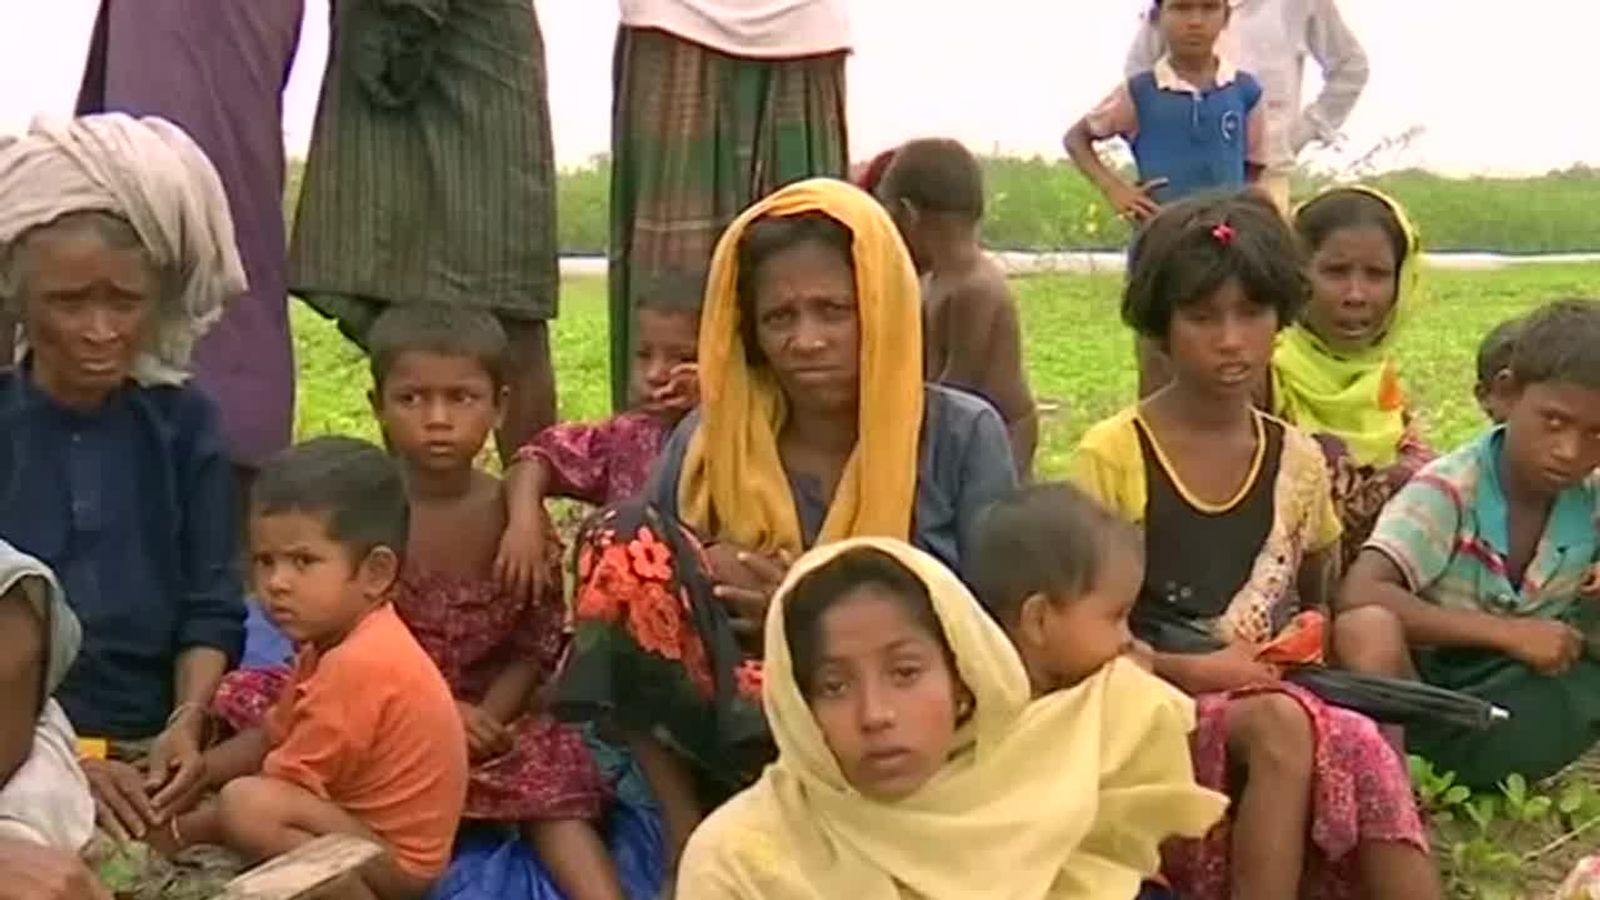 Bangladesh minister AH Mahmood Ali speaks of genocide in Myanmar's Rakhine